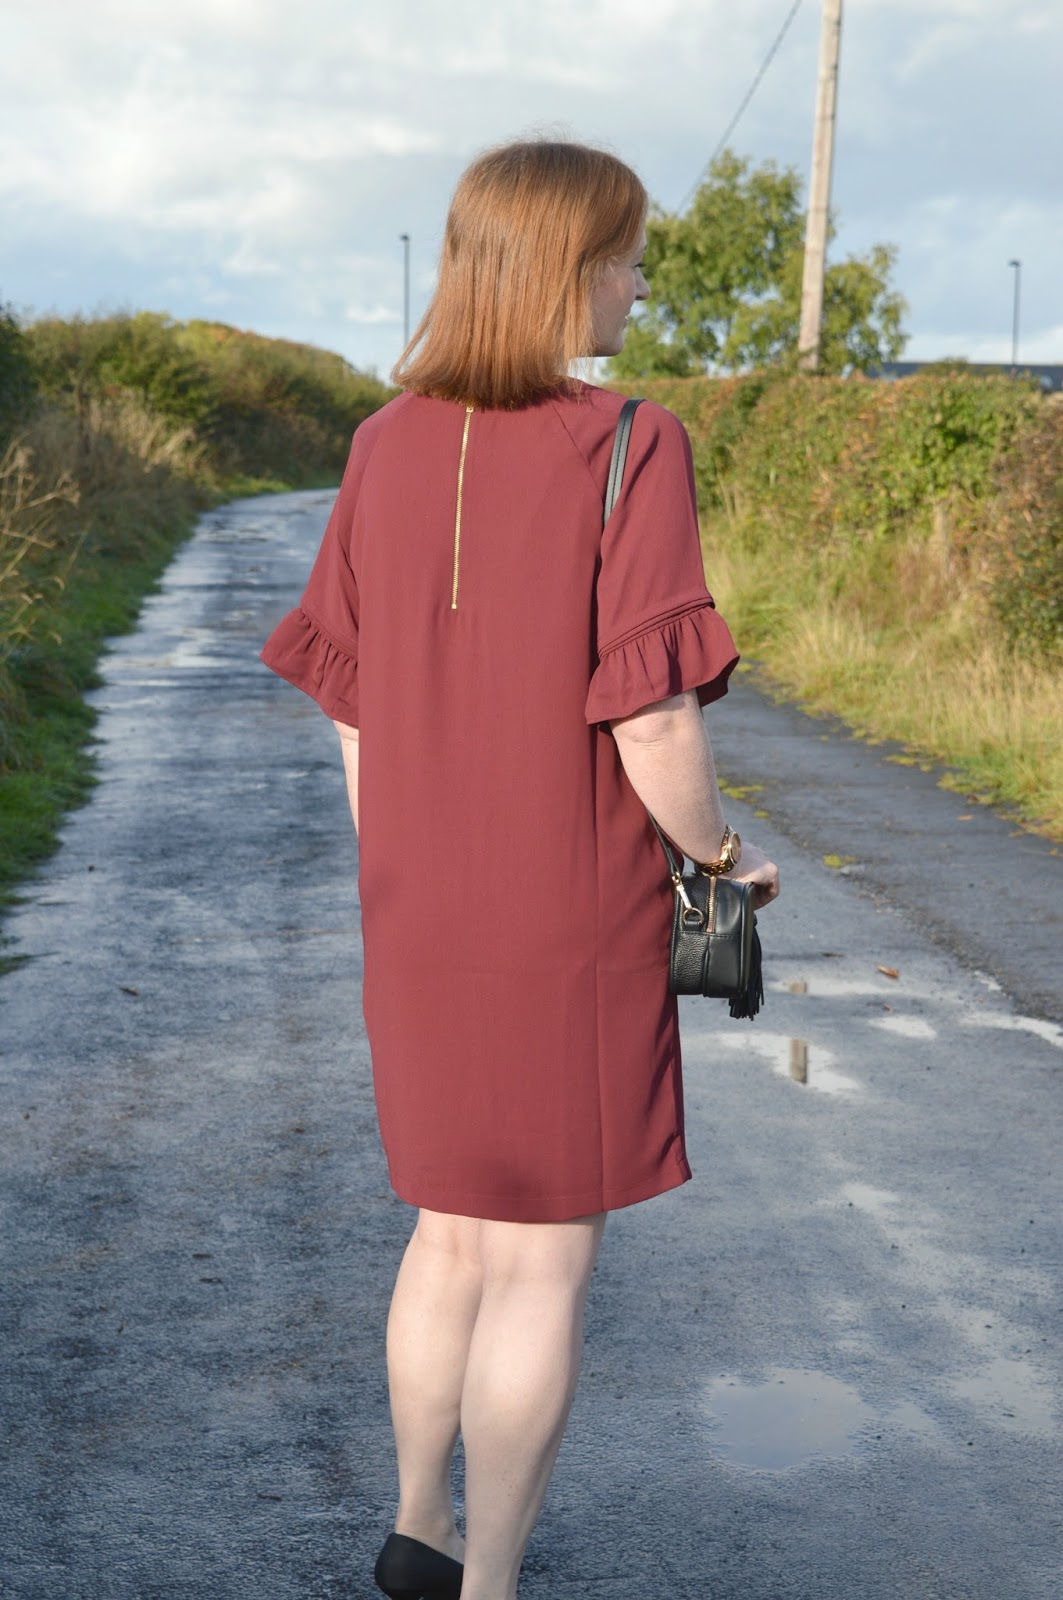 House of Fraser Dress